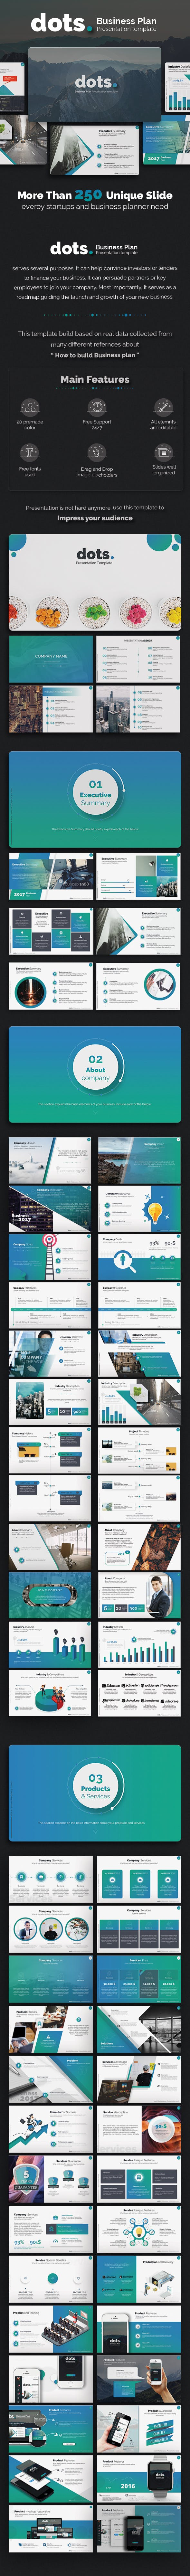 dots business plan powerpoint template by premast graphicriver